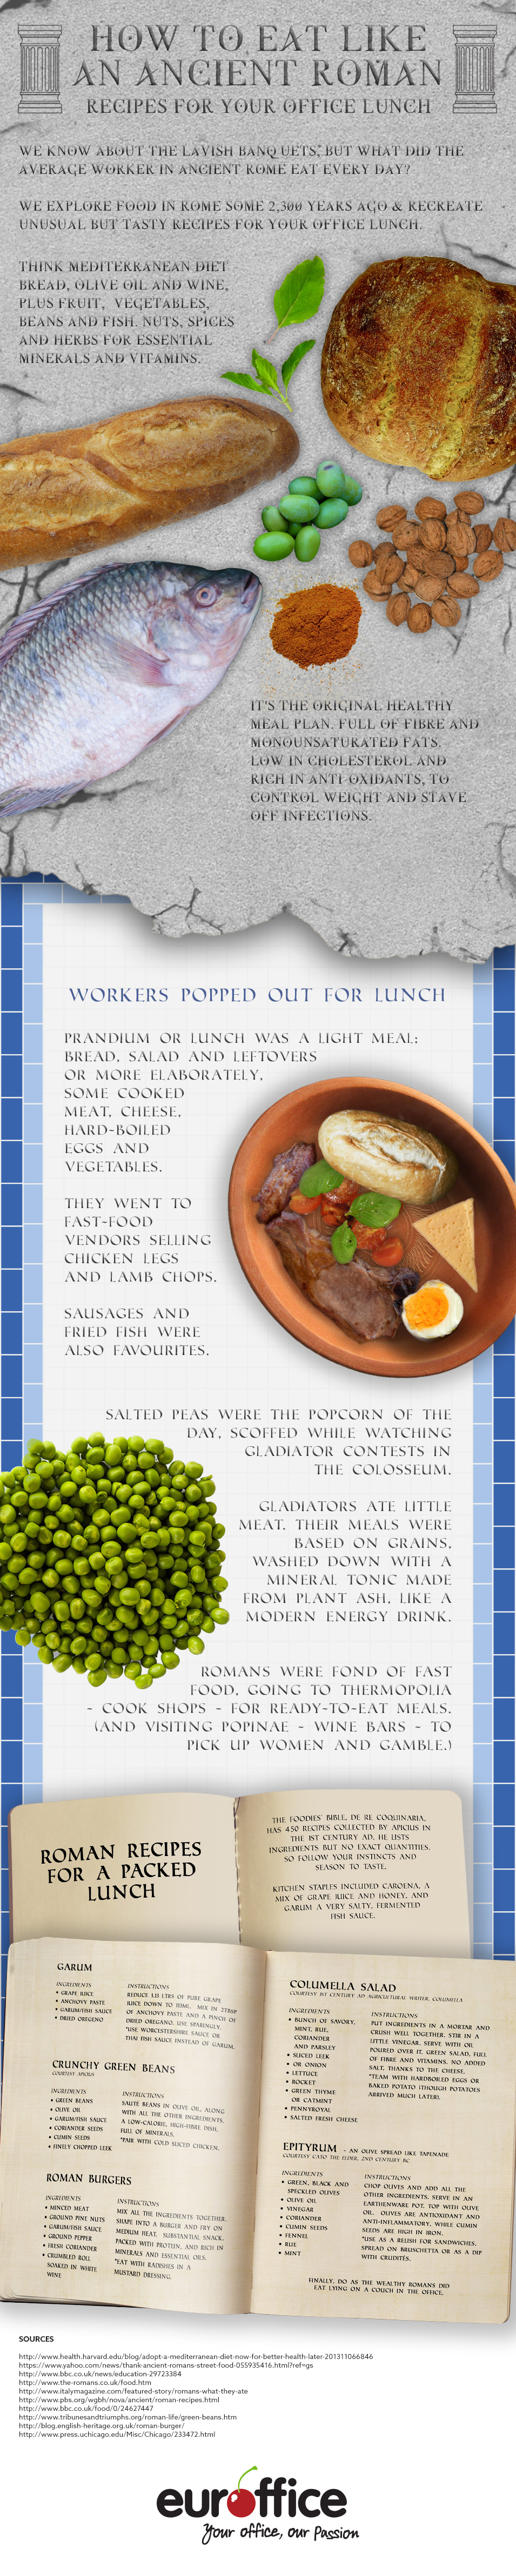 Interesting Ancient Roman Recipes For Your Office Lunch - Infographic